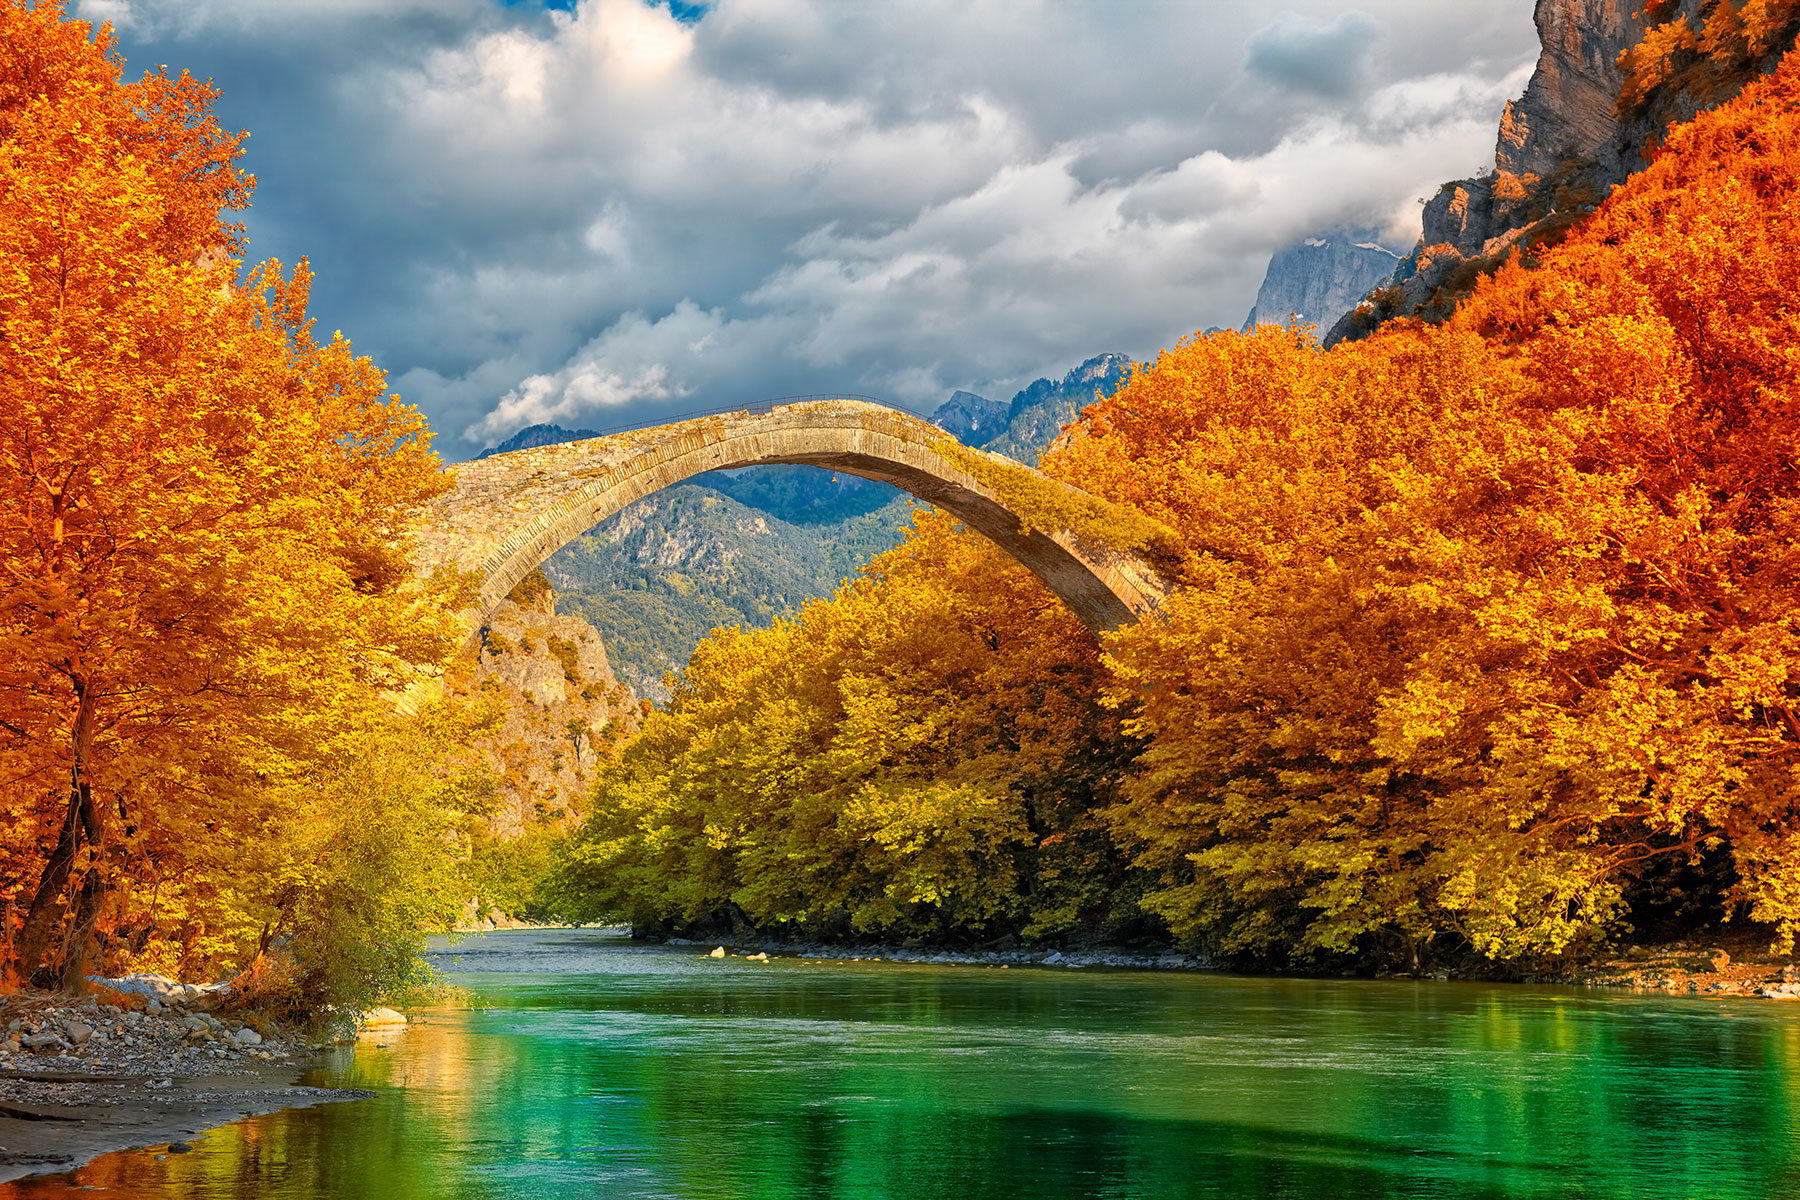 Konitsa bridge and the aoos river